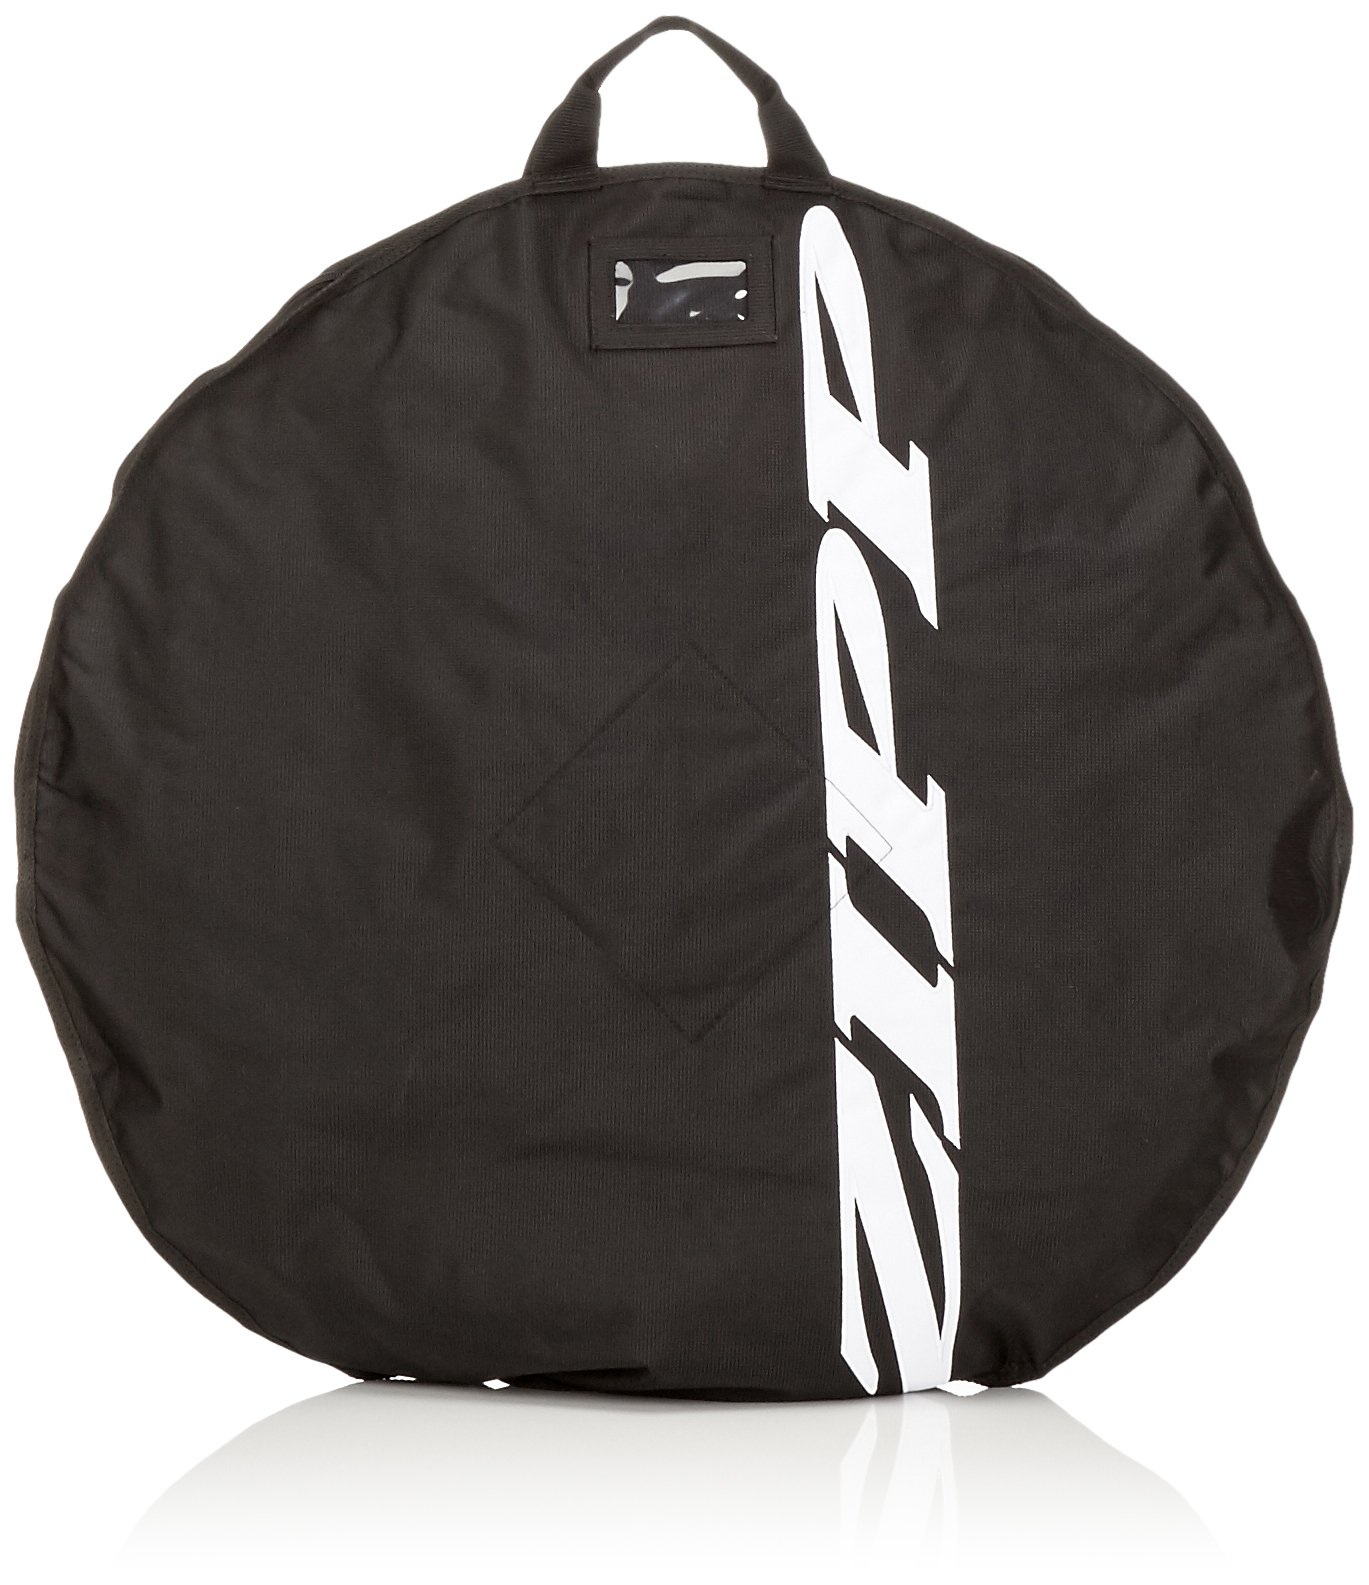 Zipp Bag, Single Wheel Bag